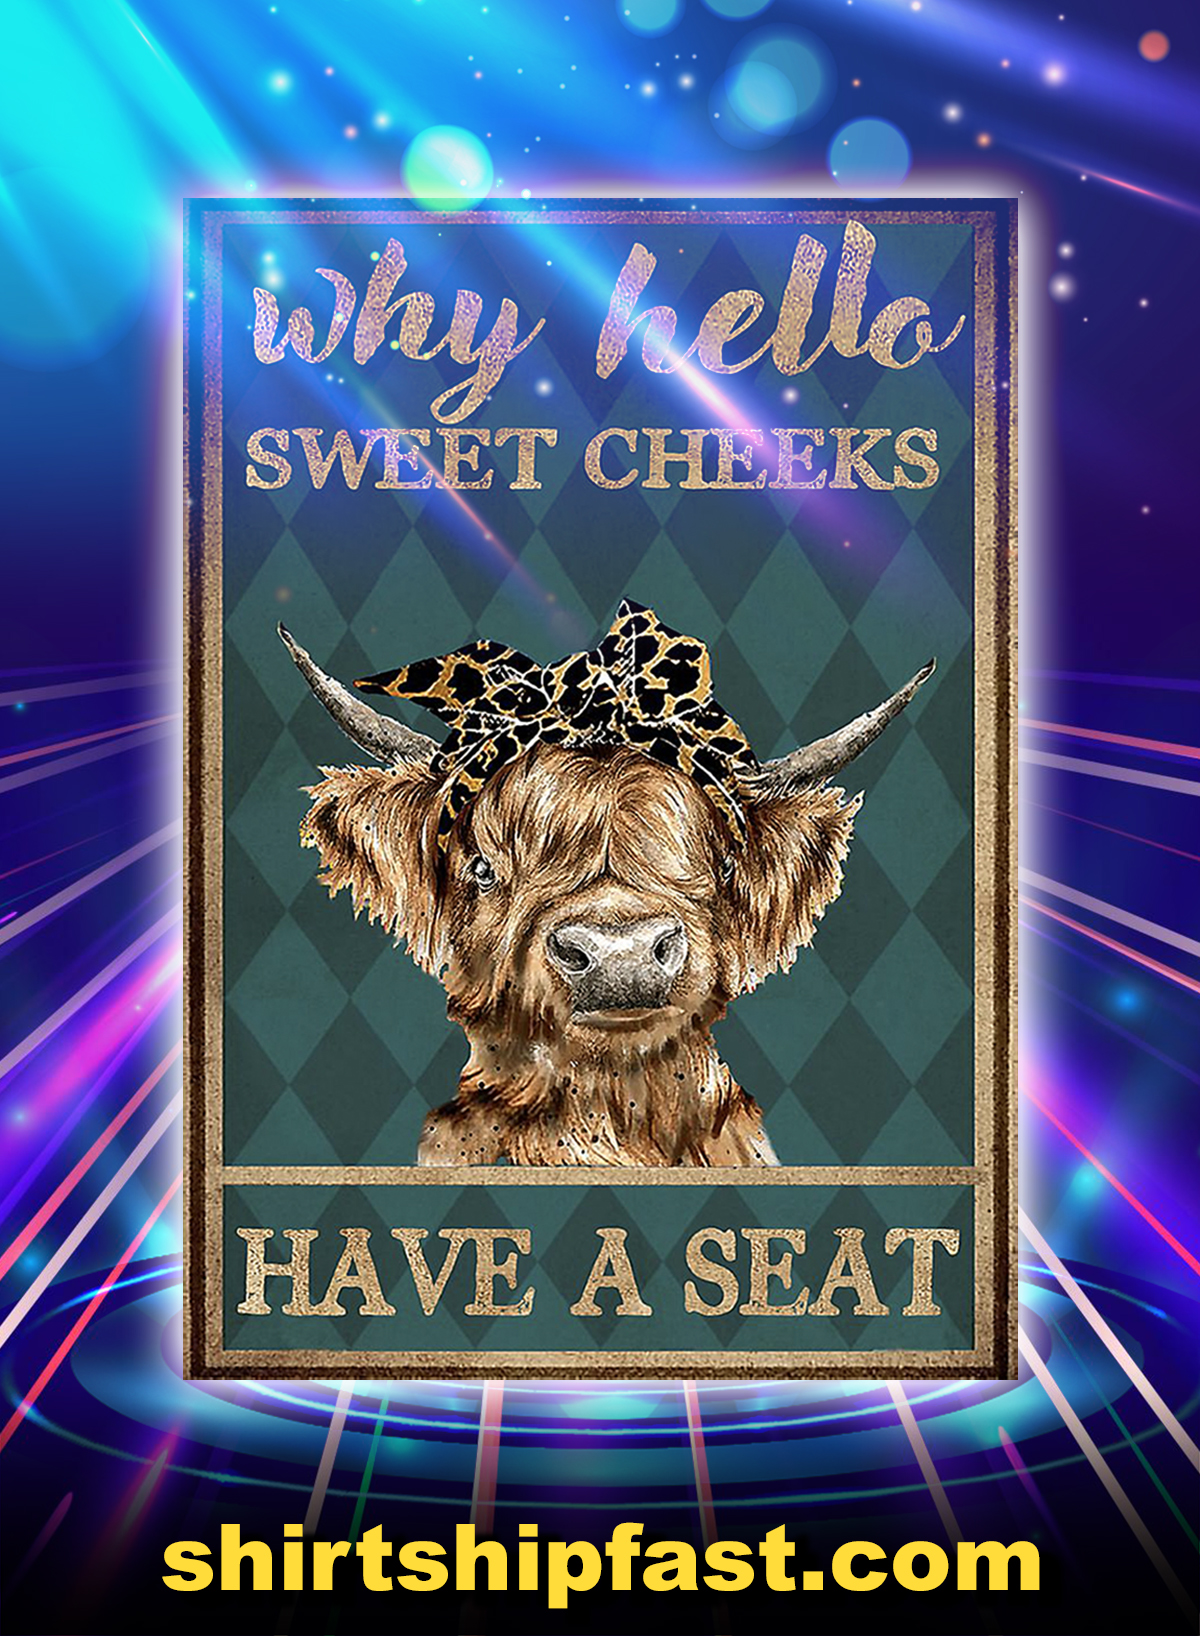 Why hello sweet cheeks have a seat cow highland cattle poster - A1